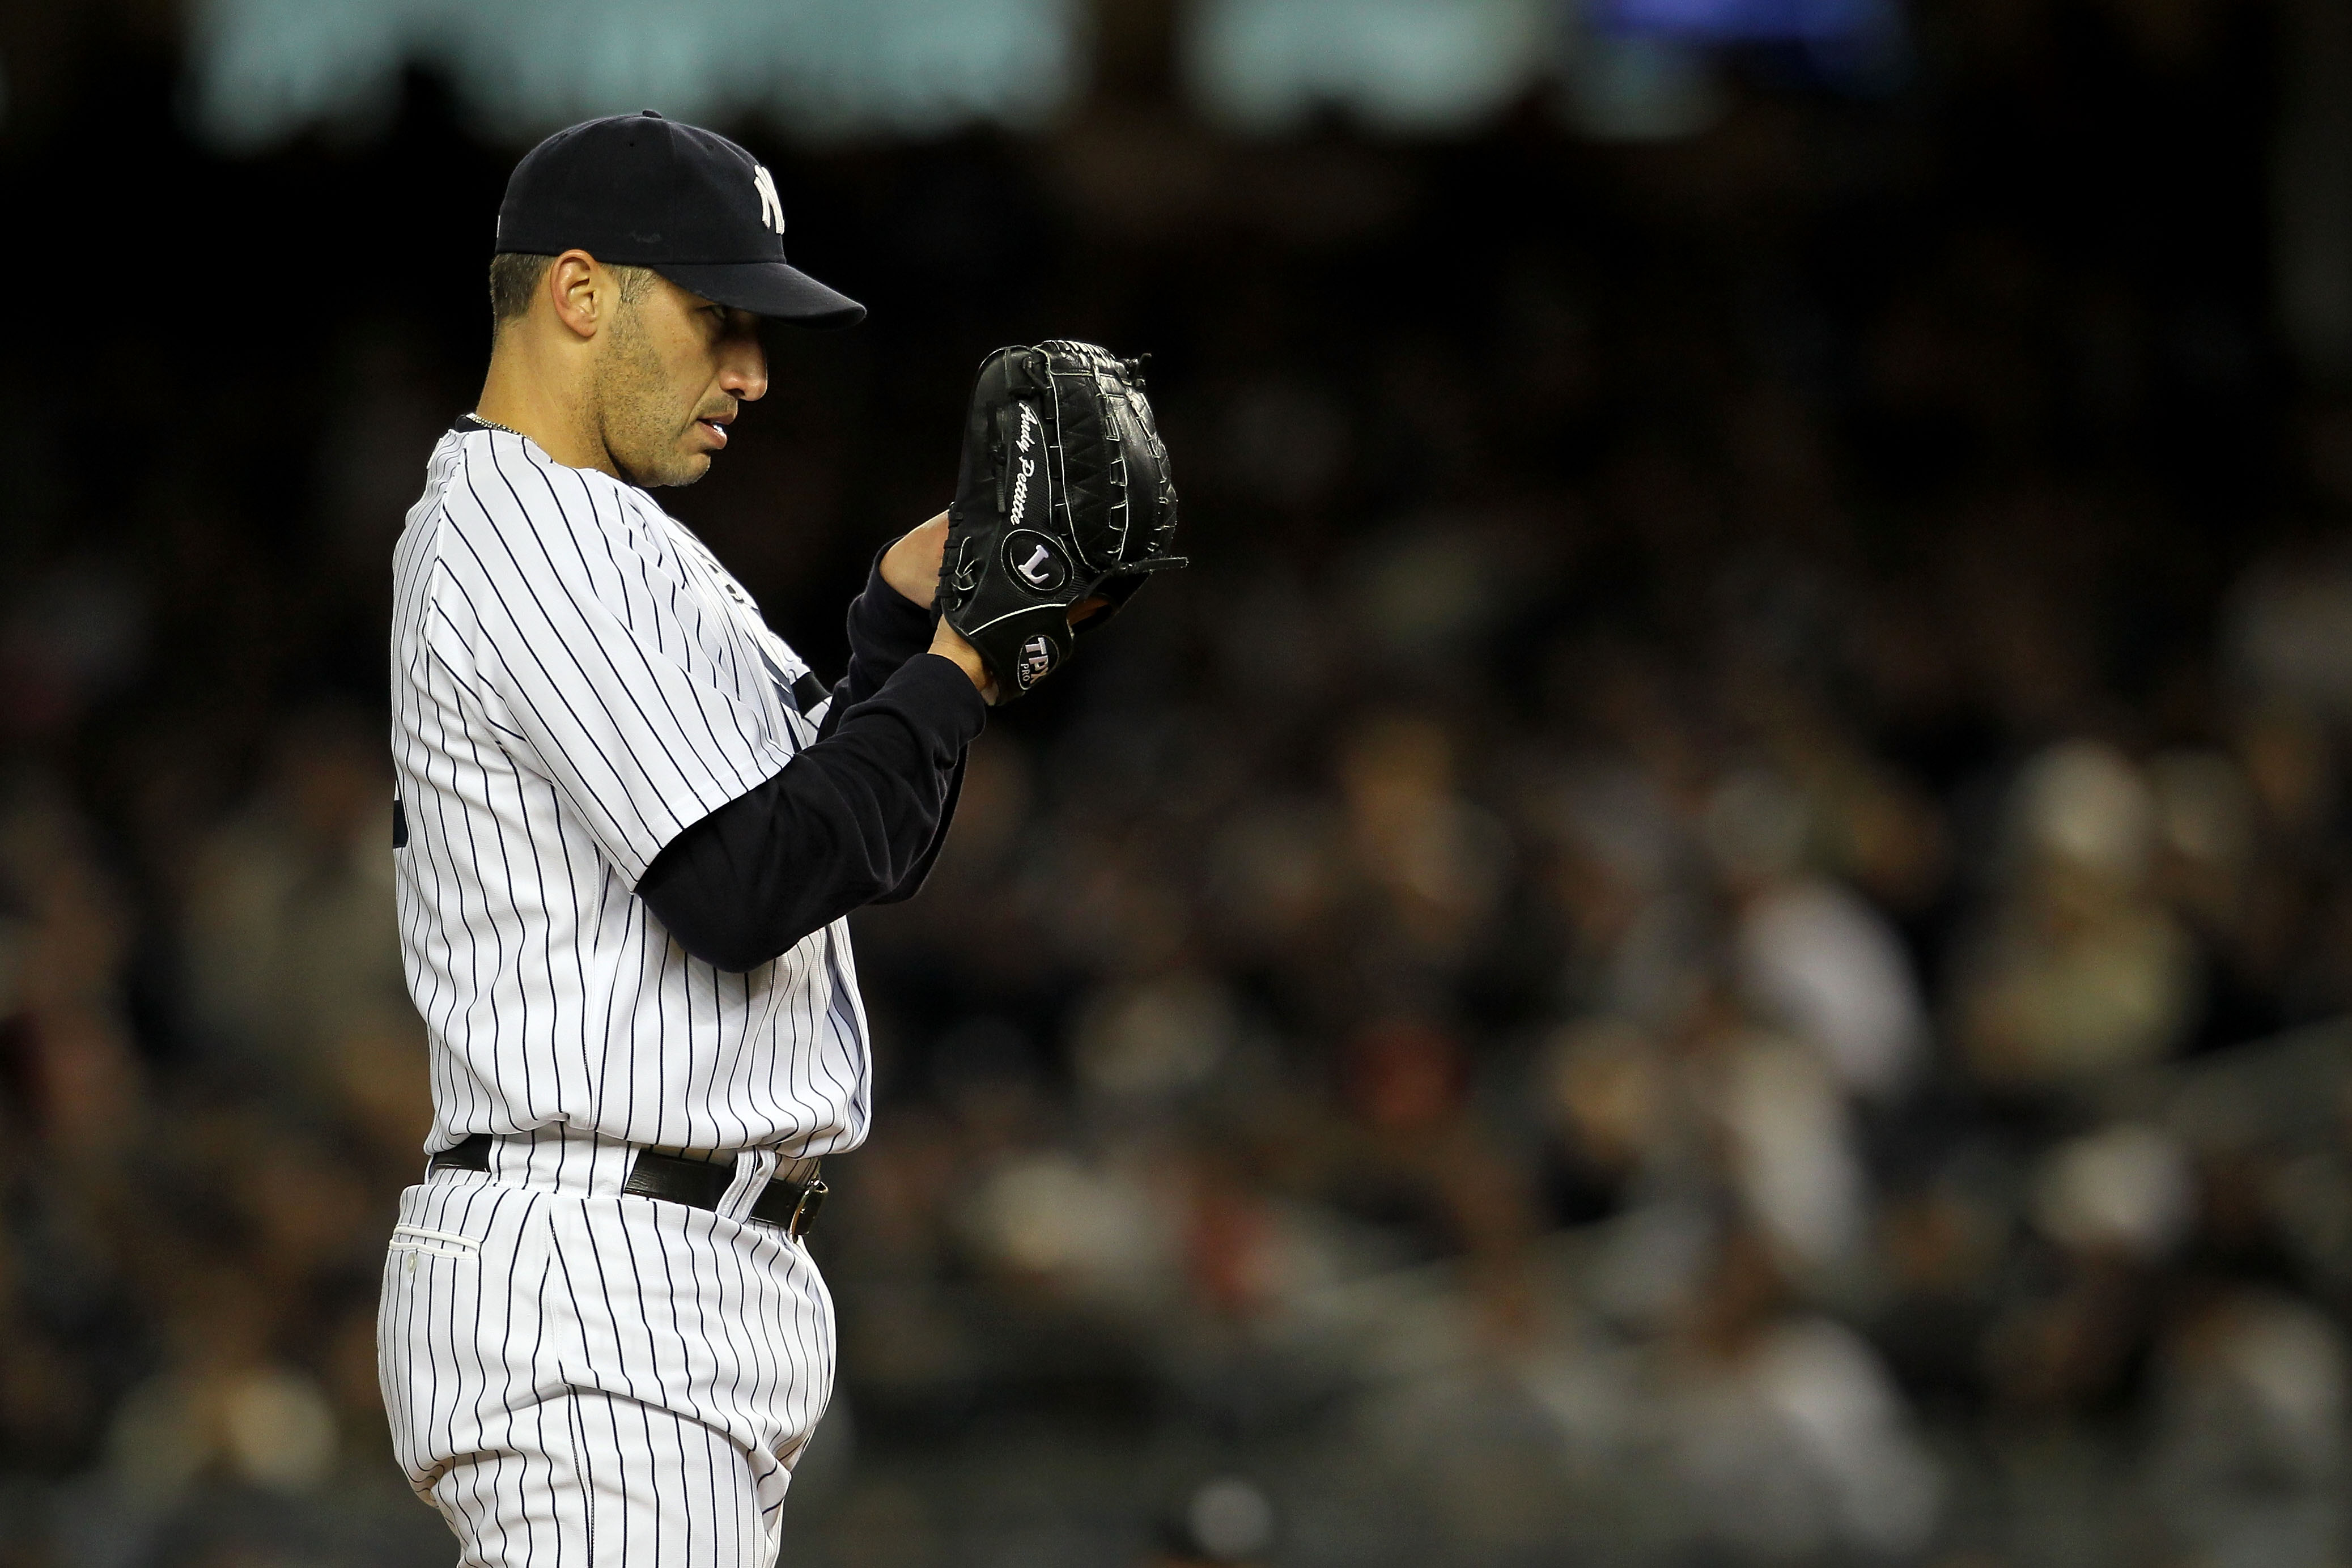 NEW YORK - OCTOBER 18:  Andy Pettitte #46 of the New York Yankees gets set to throw a pitch against the Texas Rangers in Game Three of the ALCS during the 2010 MLB Playoffs at Yankee Stadium on October 18, 2010 in New York, New York.  (Photo by Nick Laham